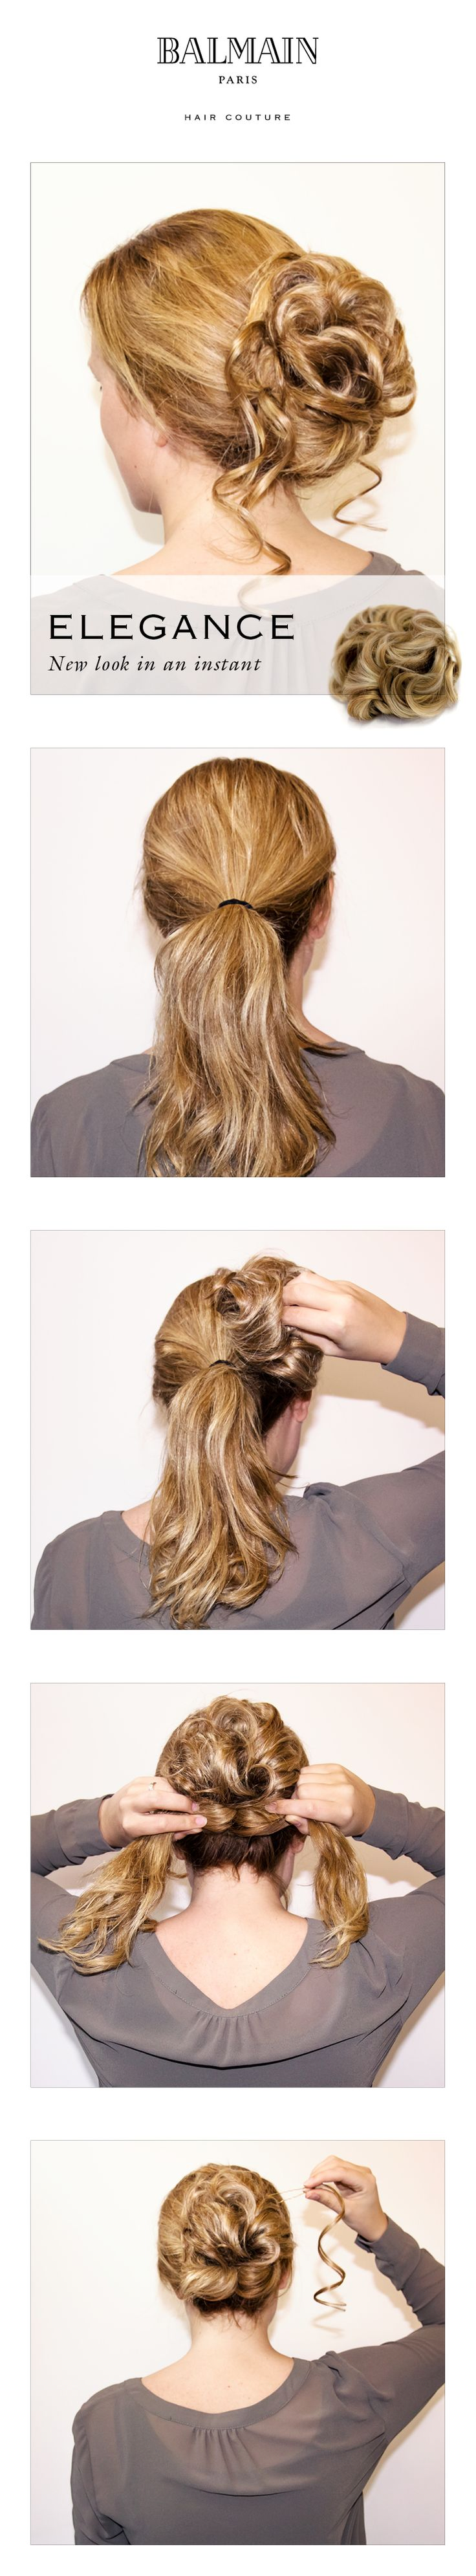 Easy sophisticated updo step-by-step!  http://www.balmainhair.com/int/hair-extensions/collections/collectionselegance.html